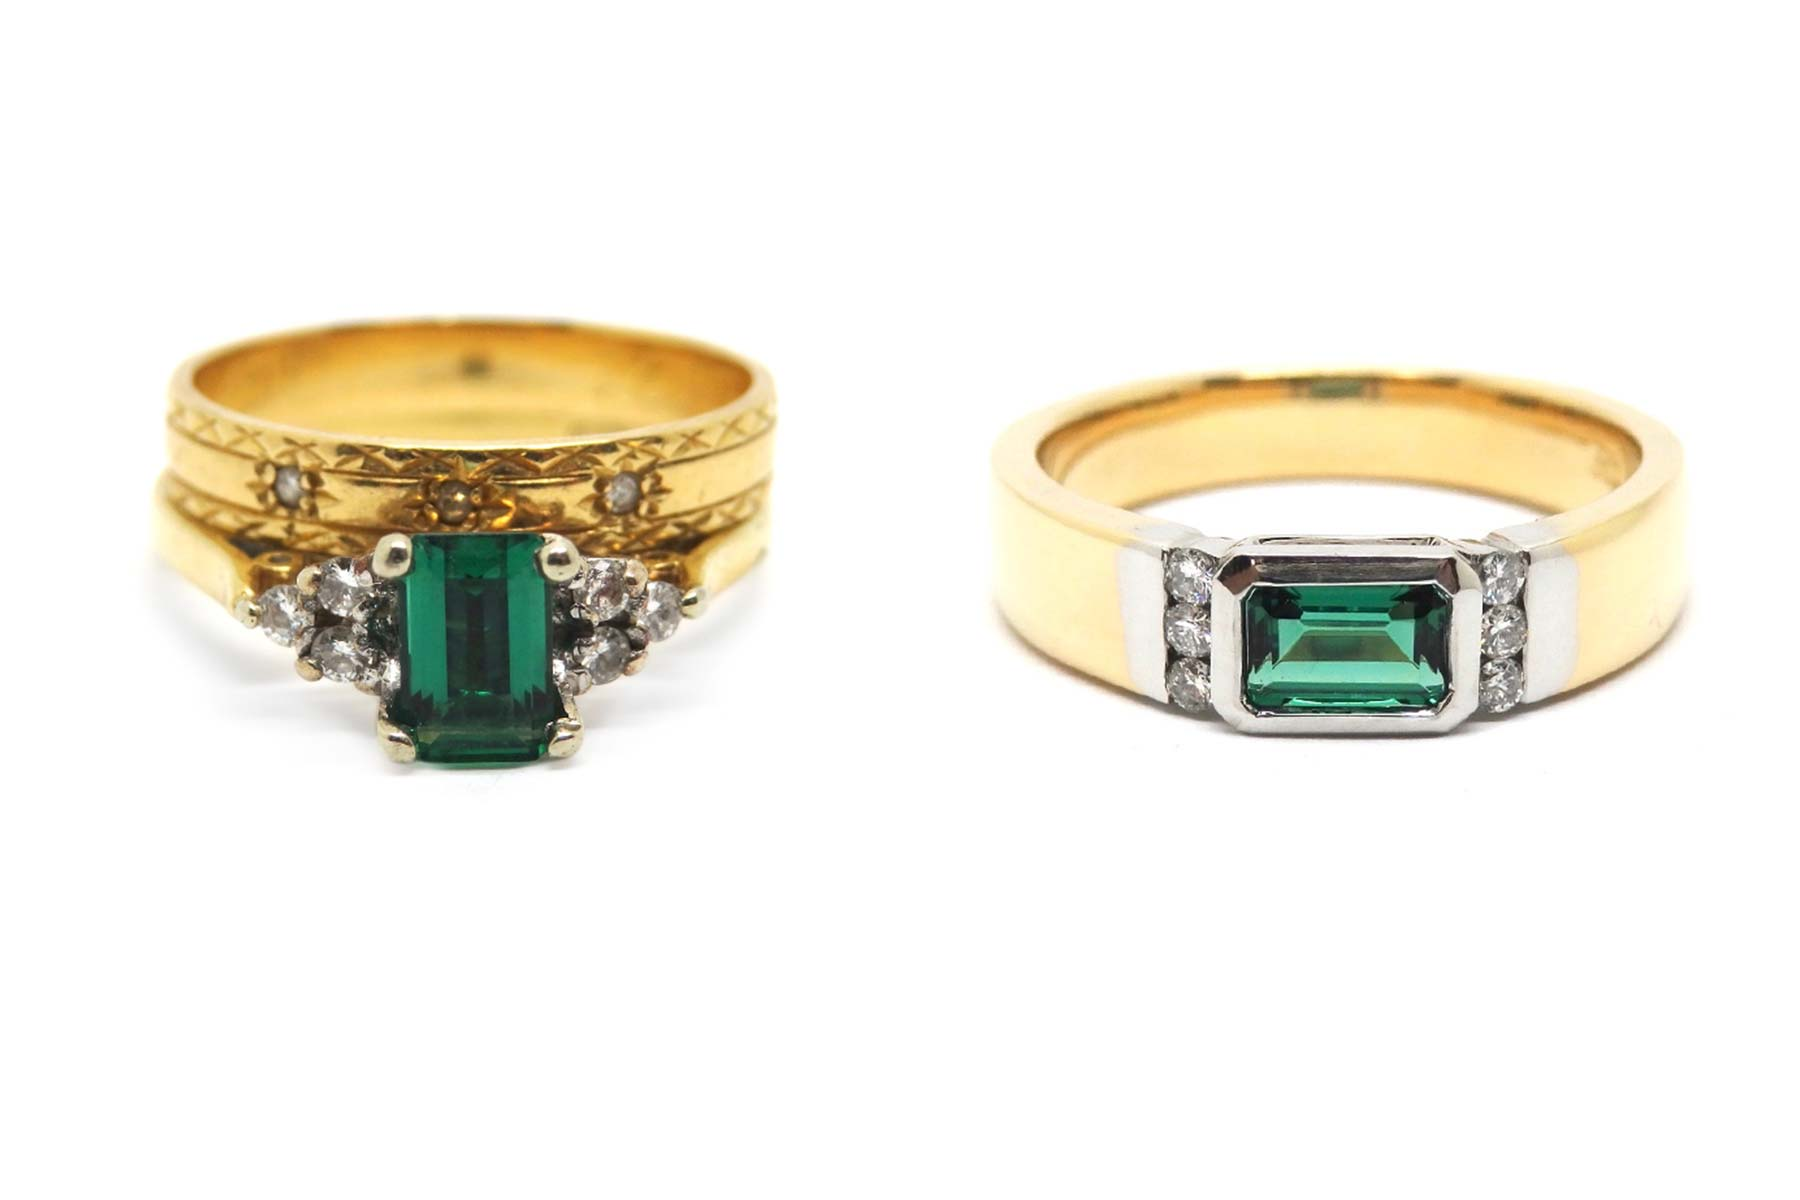 Changing the direction of an emerald and adding the diamonds in a channel really updates a tired and dated design